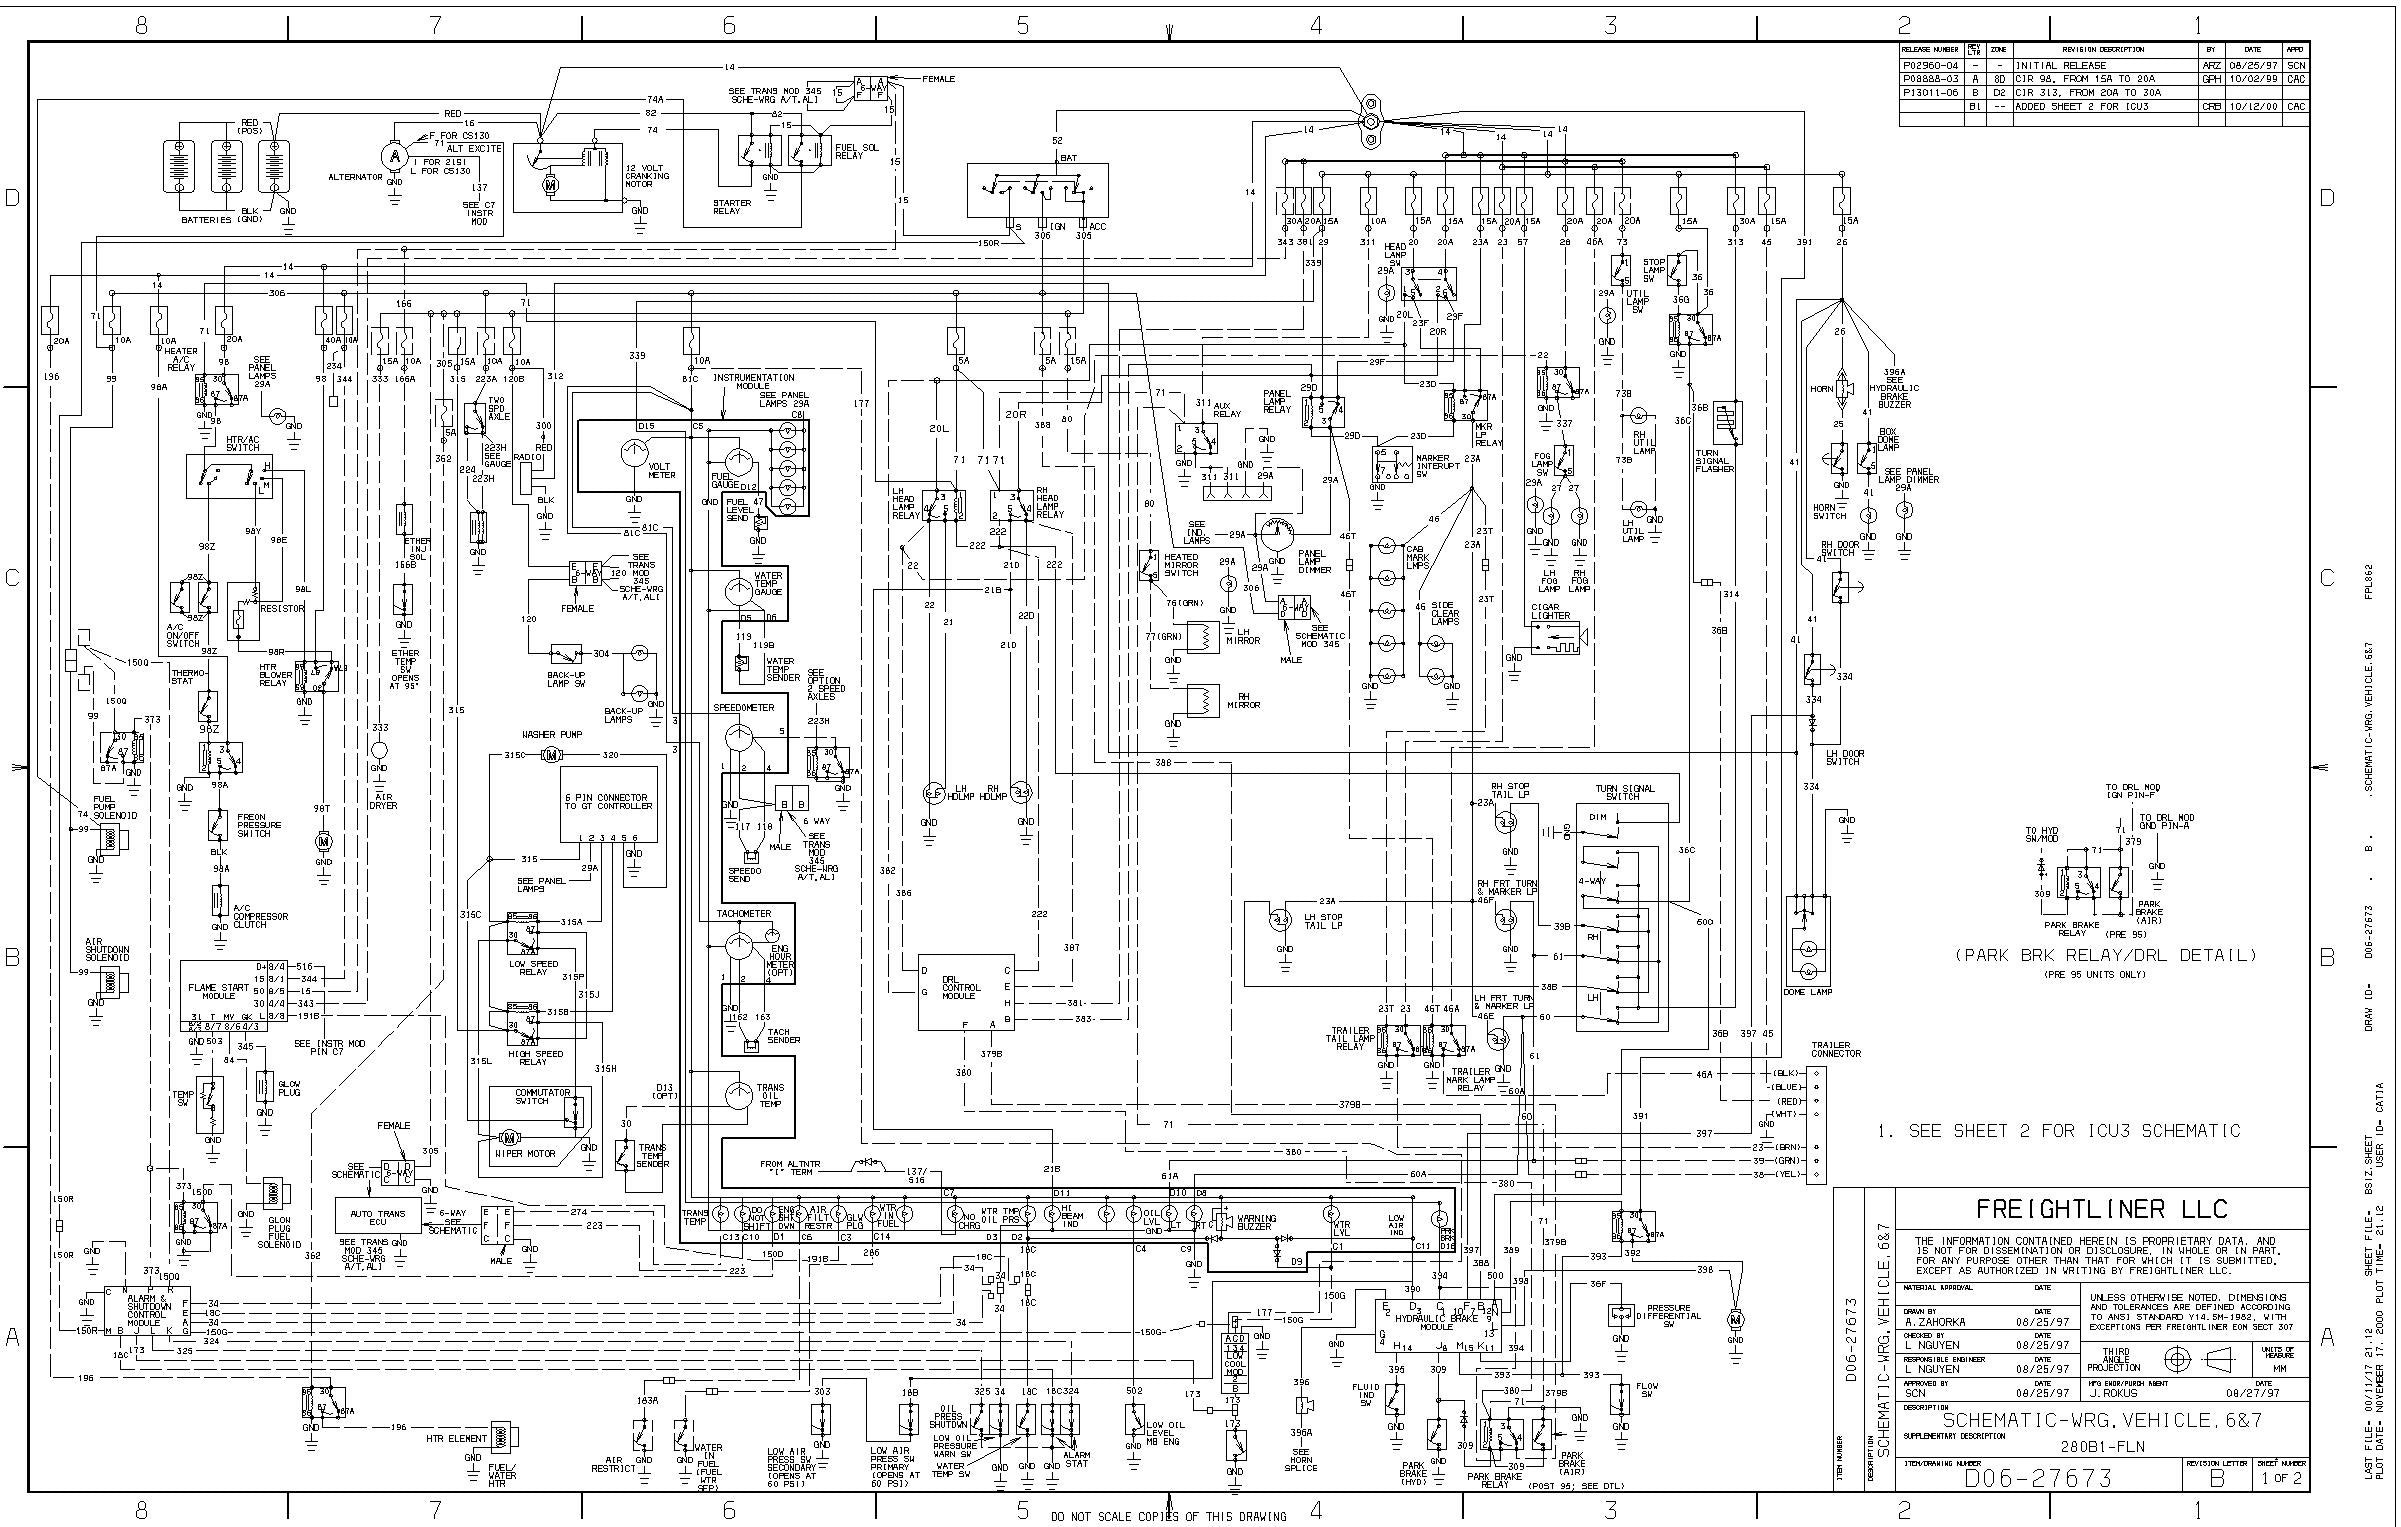 freightliner m2 wiring diagram Download-Access Freightliner Wiring Diagrams Gallery Diagram Also 3-p